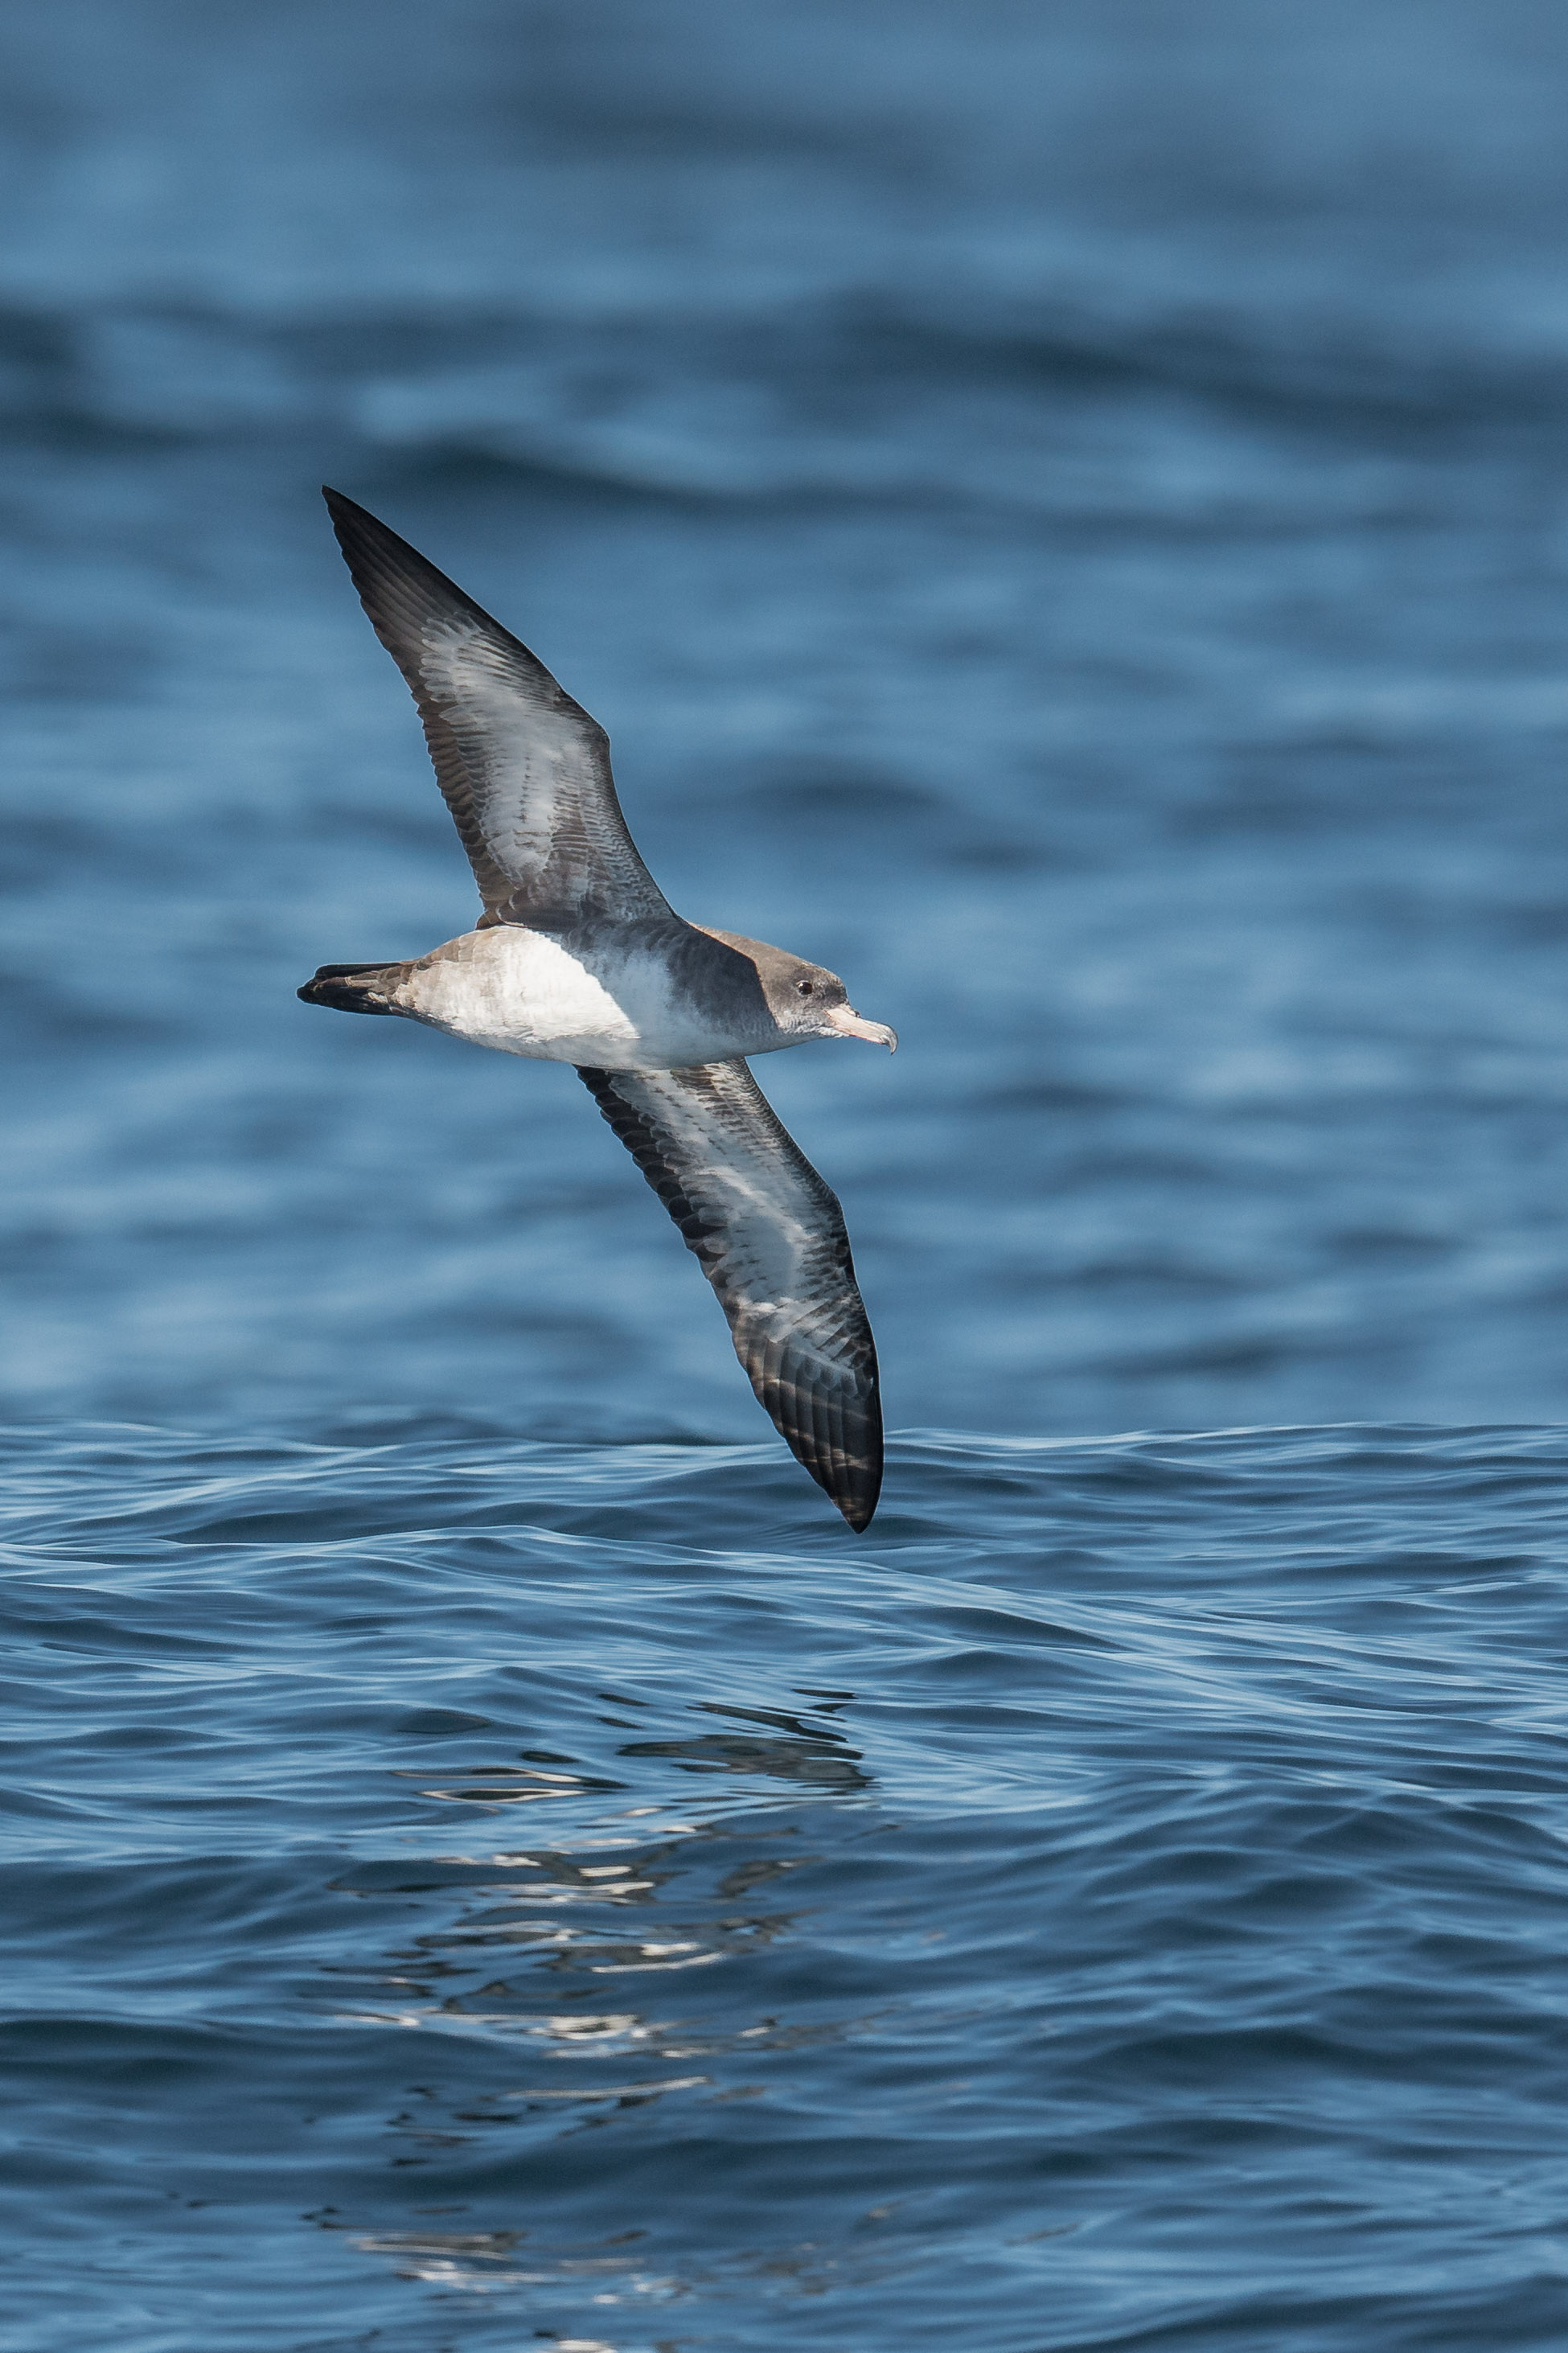 Pink-footed Shearwater (Ardenna creatopus)   Settings: 750 mm (eqiv), 1/1600s, f/5.6, ISO32  0, +1/3EV (11:06a)